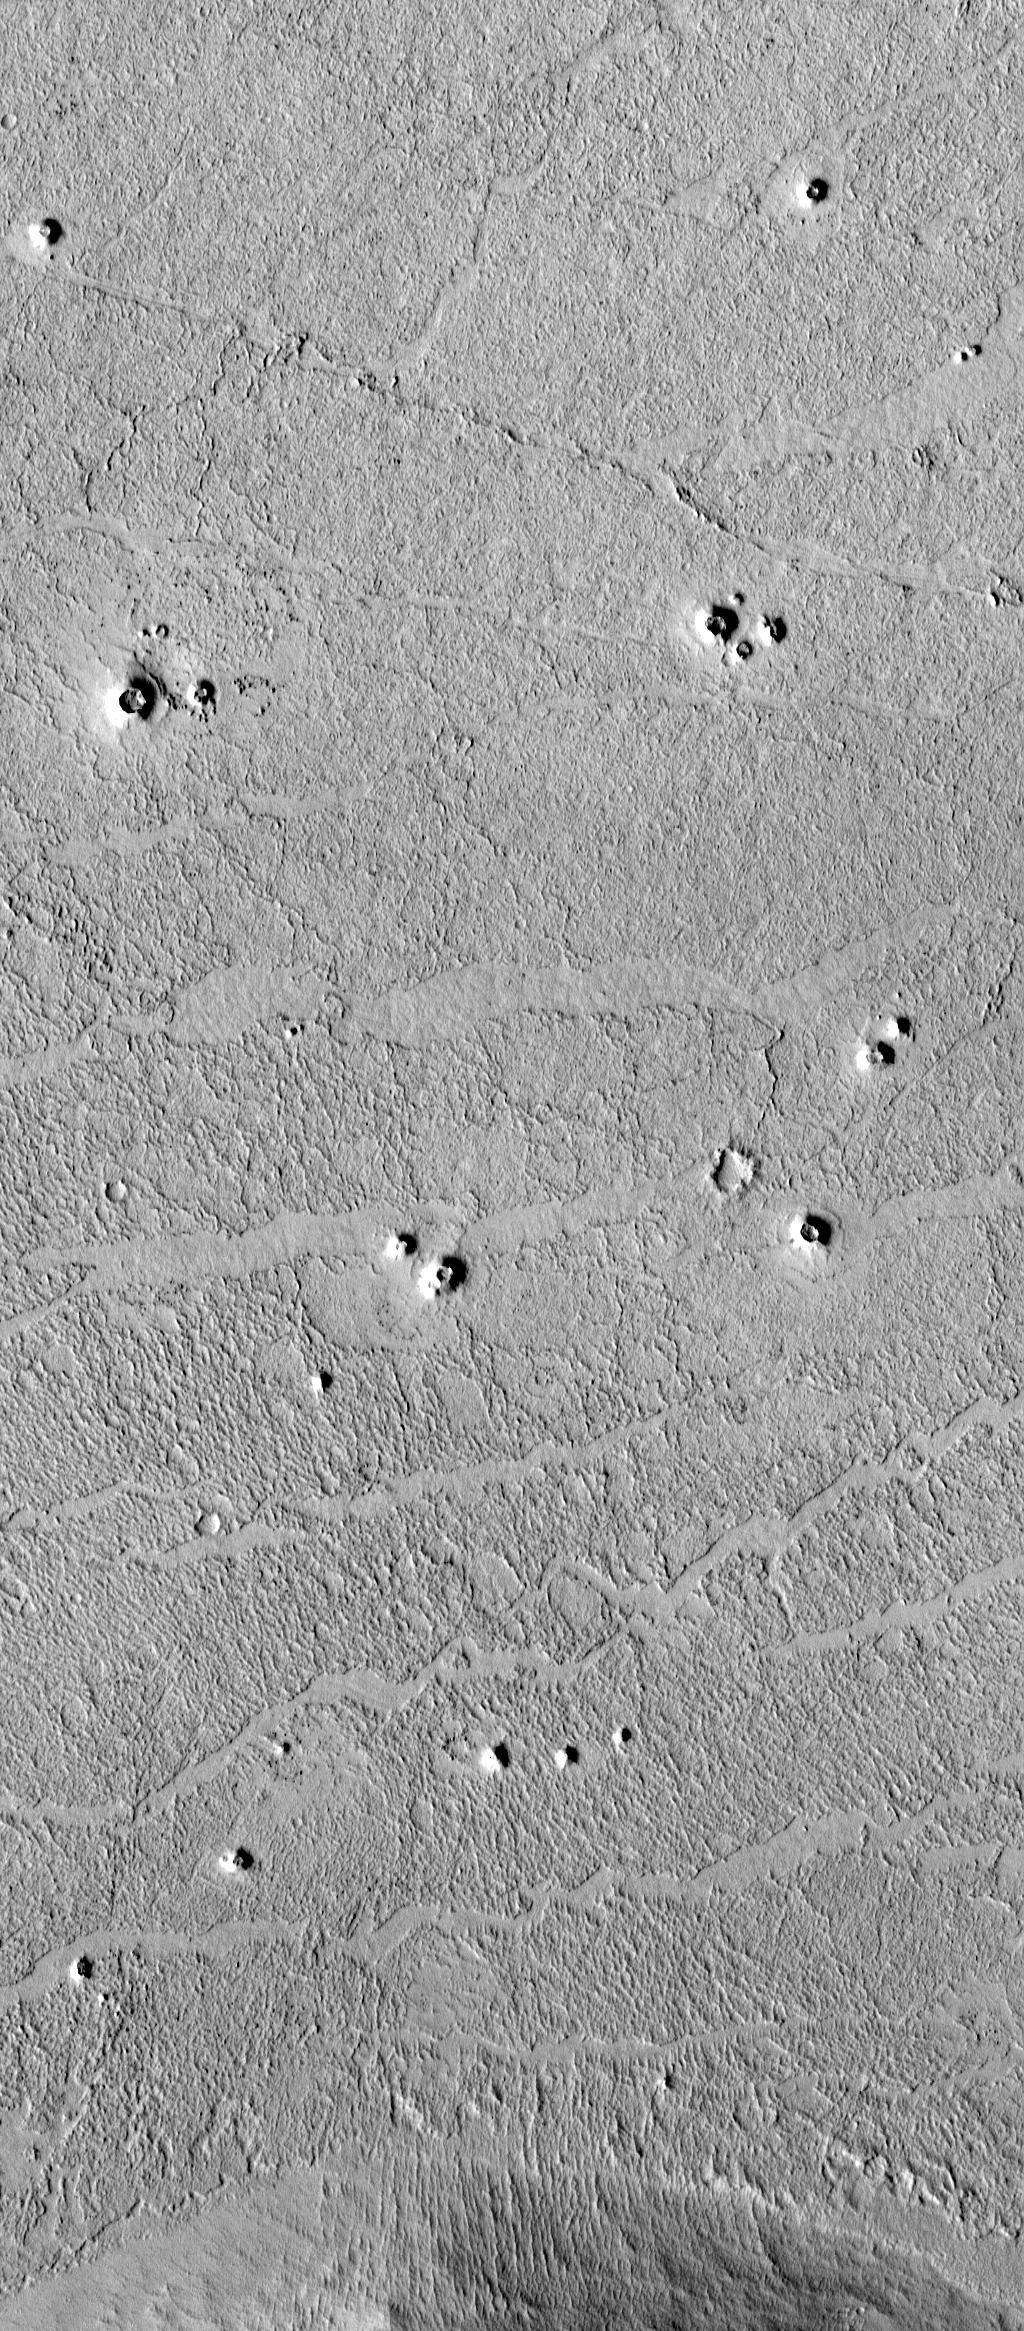 "High-resolution images from the Mars Global Surveyor (MGS) Mars Orbiter Camera (MOC) have revealed small cone-shaped structures on lava flows in southern Elysium Planitia, Marte Valles, and northwestern Amazonis Planitia in the northern hemisphere of the red planet. The most likely interpretation of these cones is that they may be volcanic features known as ""pseudo craters"" or ""rootless cones."" They share several key characteristics with pseudo craters on Earth: they are distributed in small clusters independent of structural patterns, are superimposed on fresh lava flows, and they do not appear to have erupted lavas themselves"